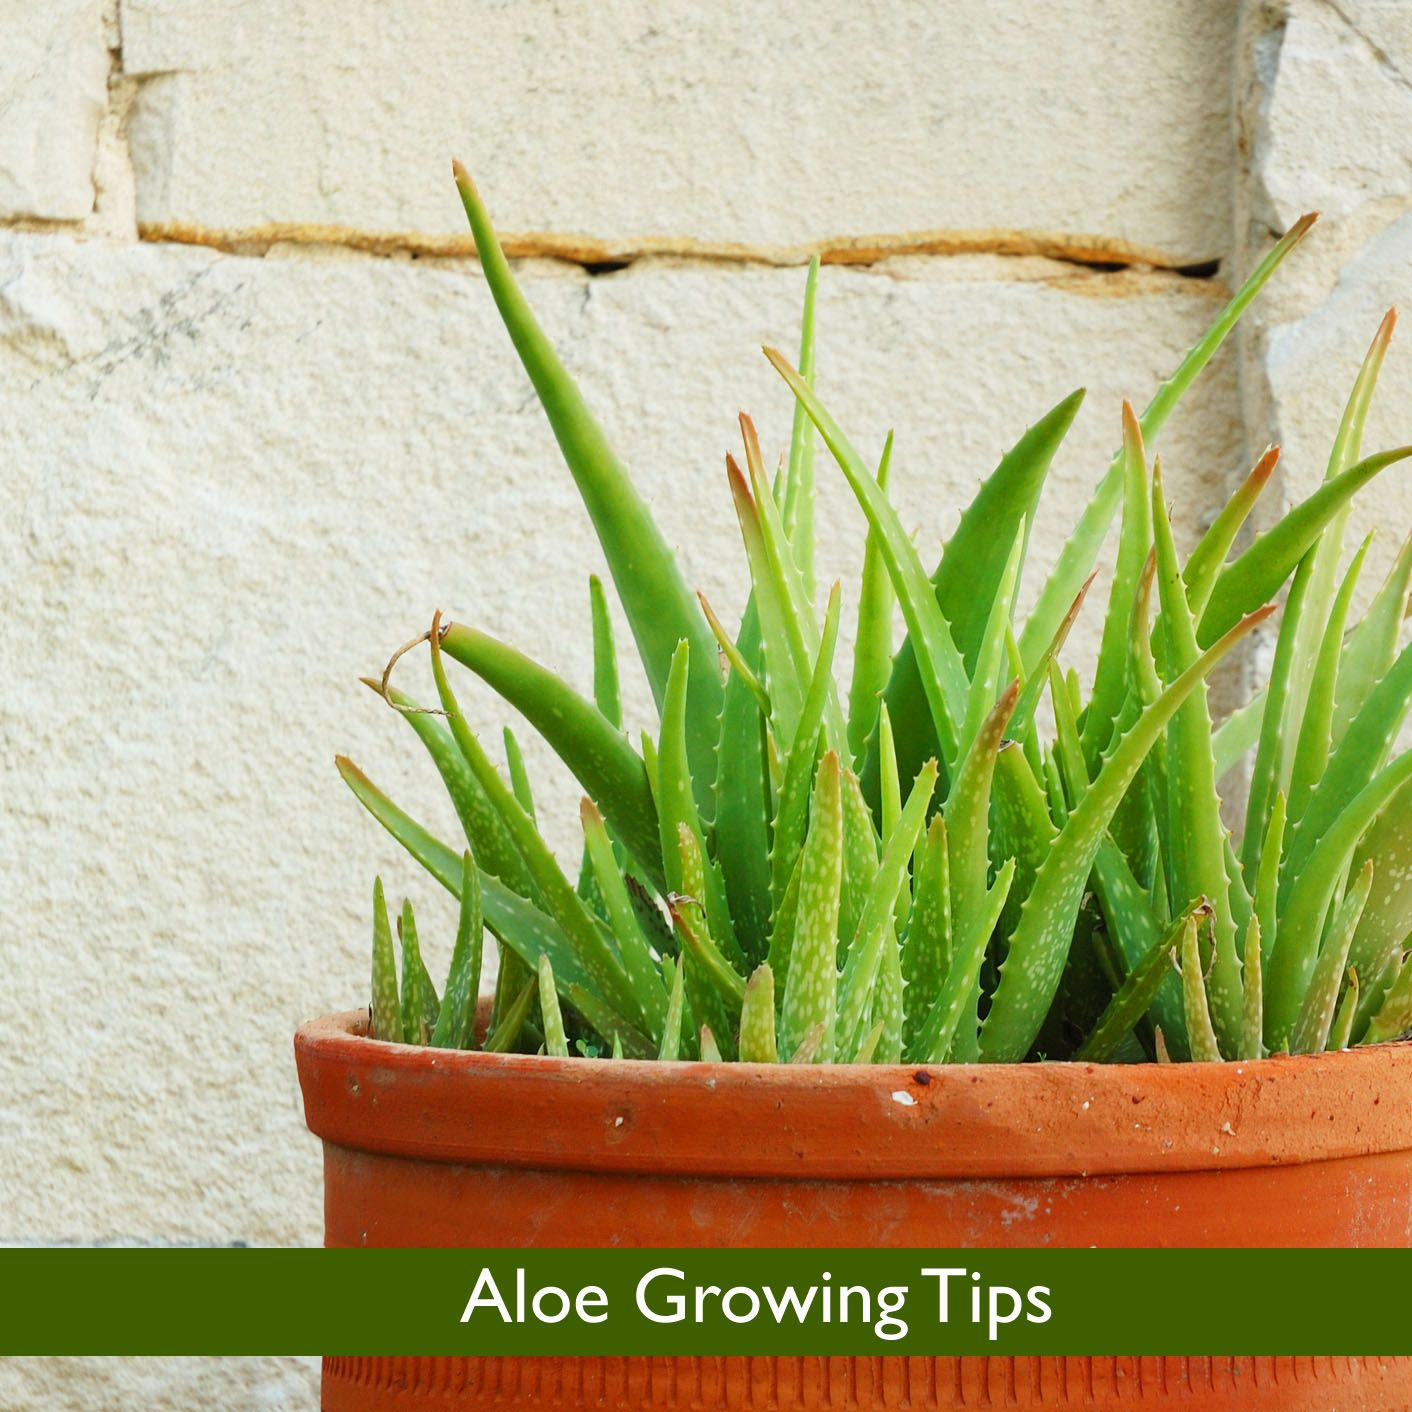 Aloe Growing Tips (With Images)